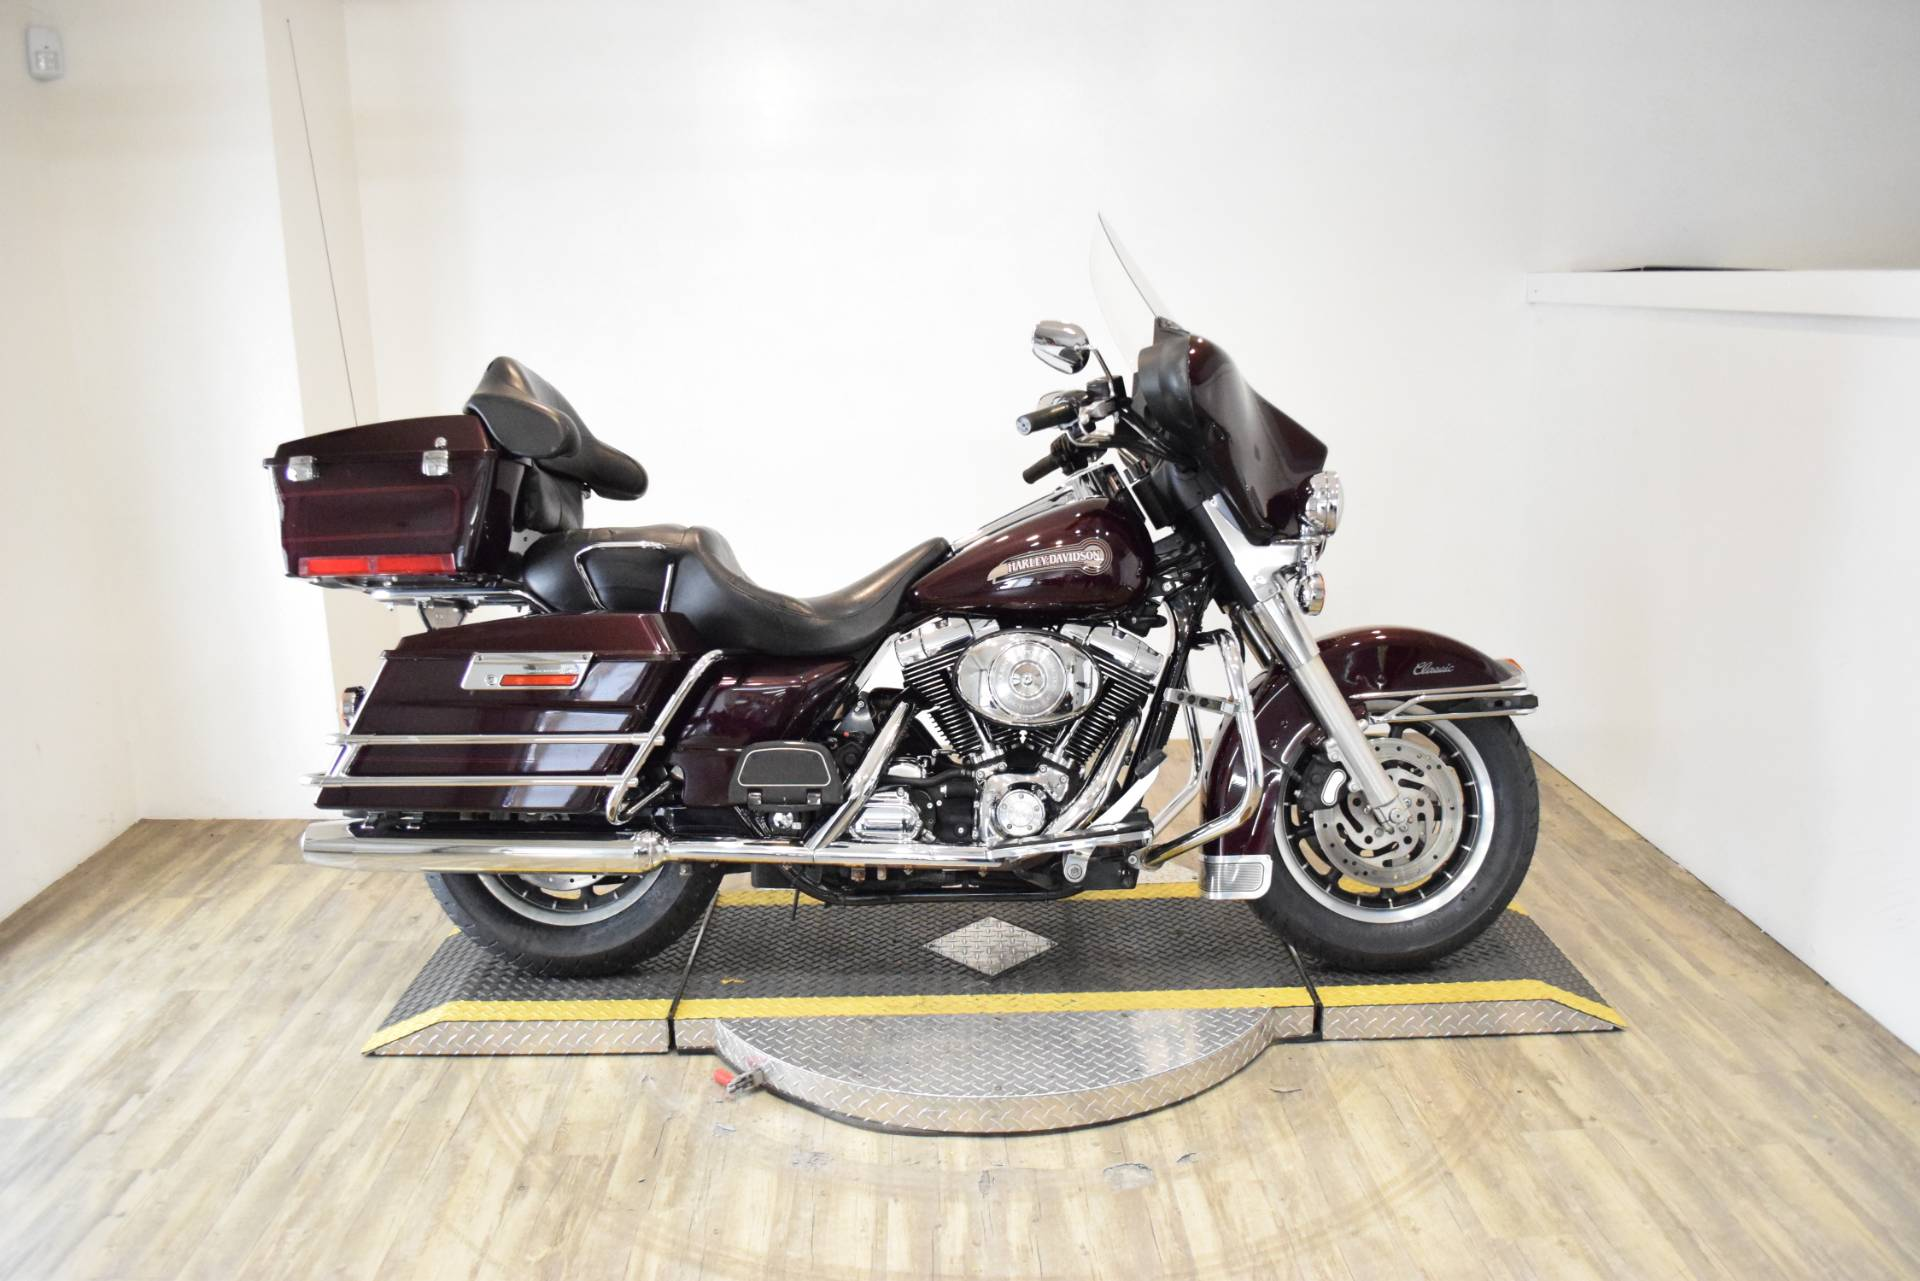 2005 Harley-Davidson FLHTC/FLHTCI Electra Glide® Classic in Wauconda, Illinois - Photo 1